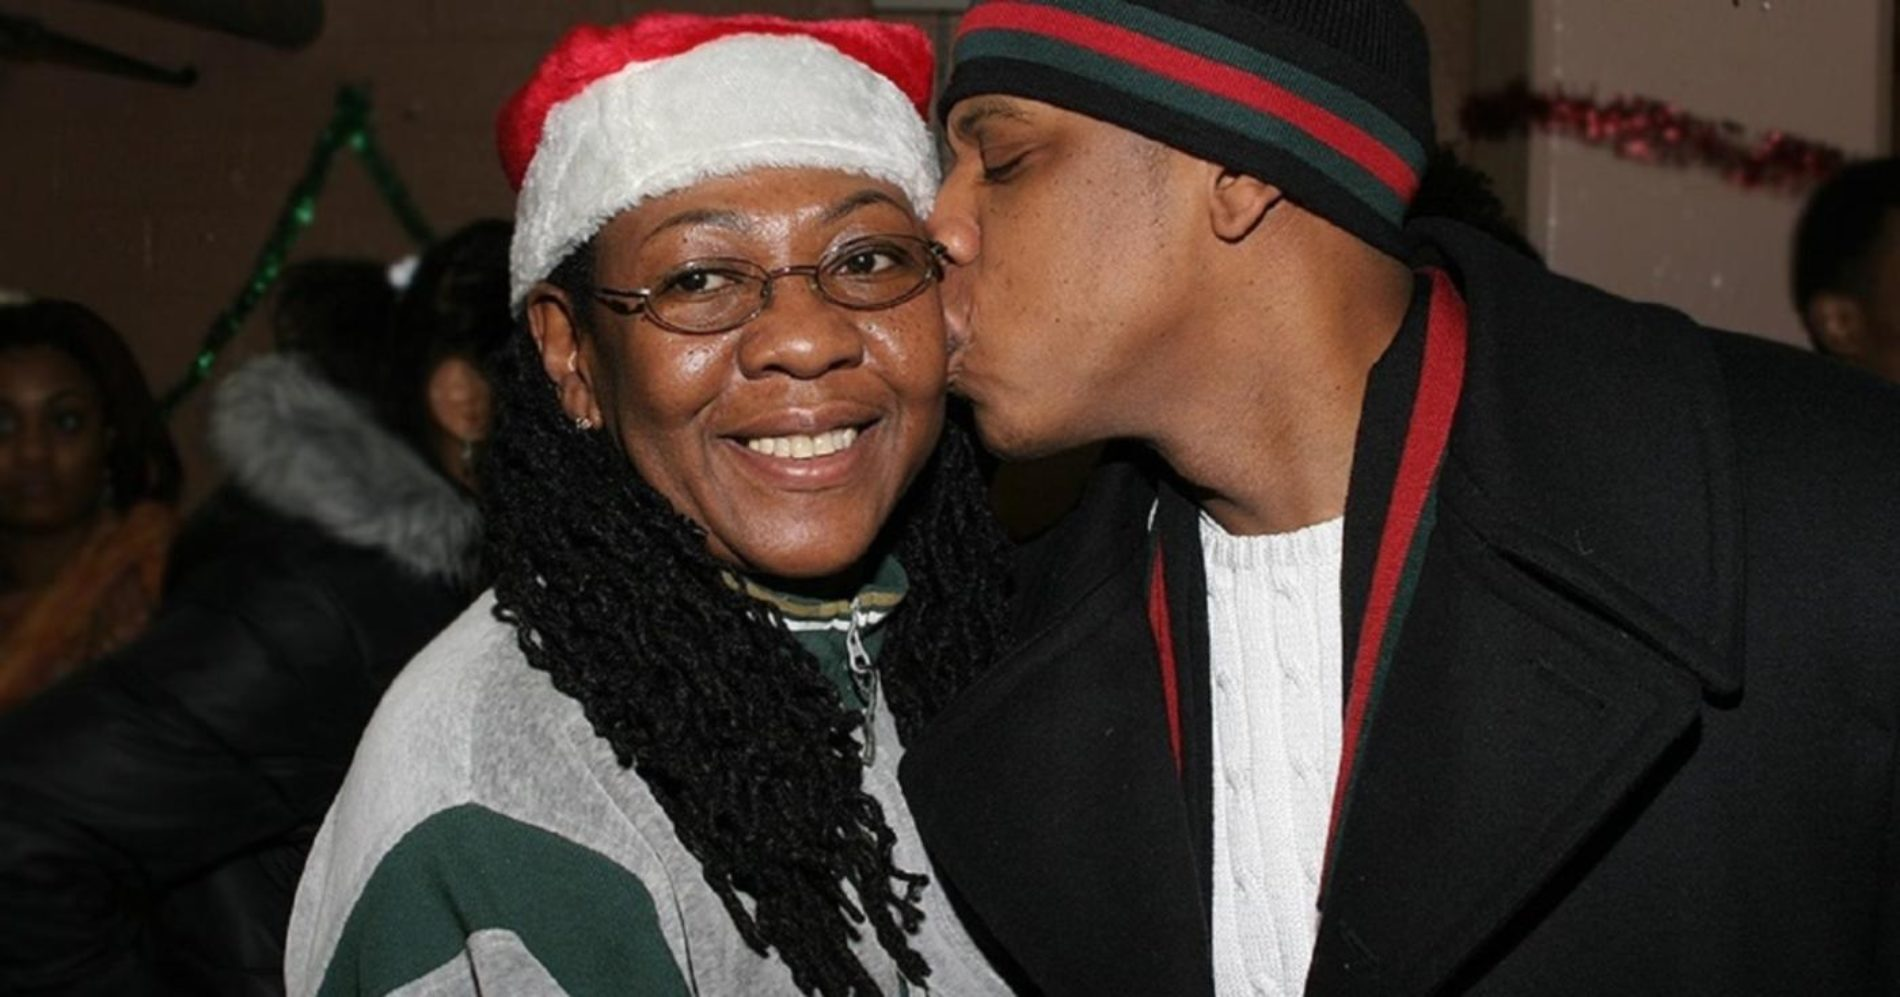 Jay Z to Receive Special GLAAD Awards Recognition For Song, 'Smile', Which Honours Lesbian Mother